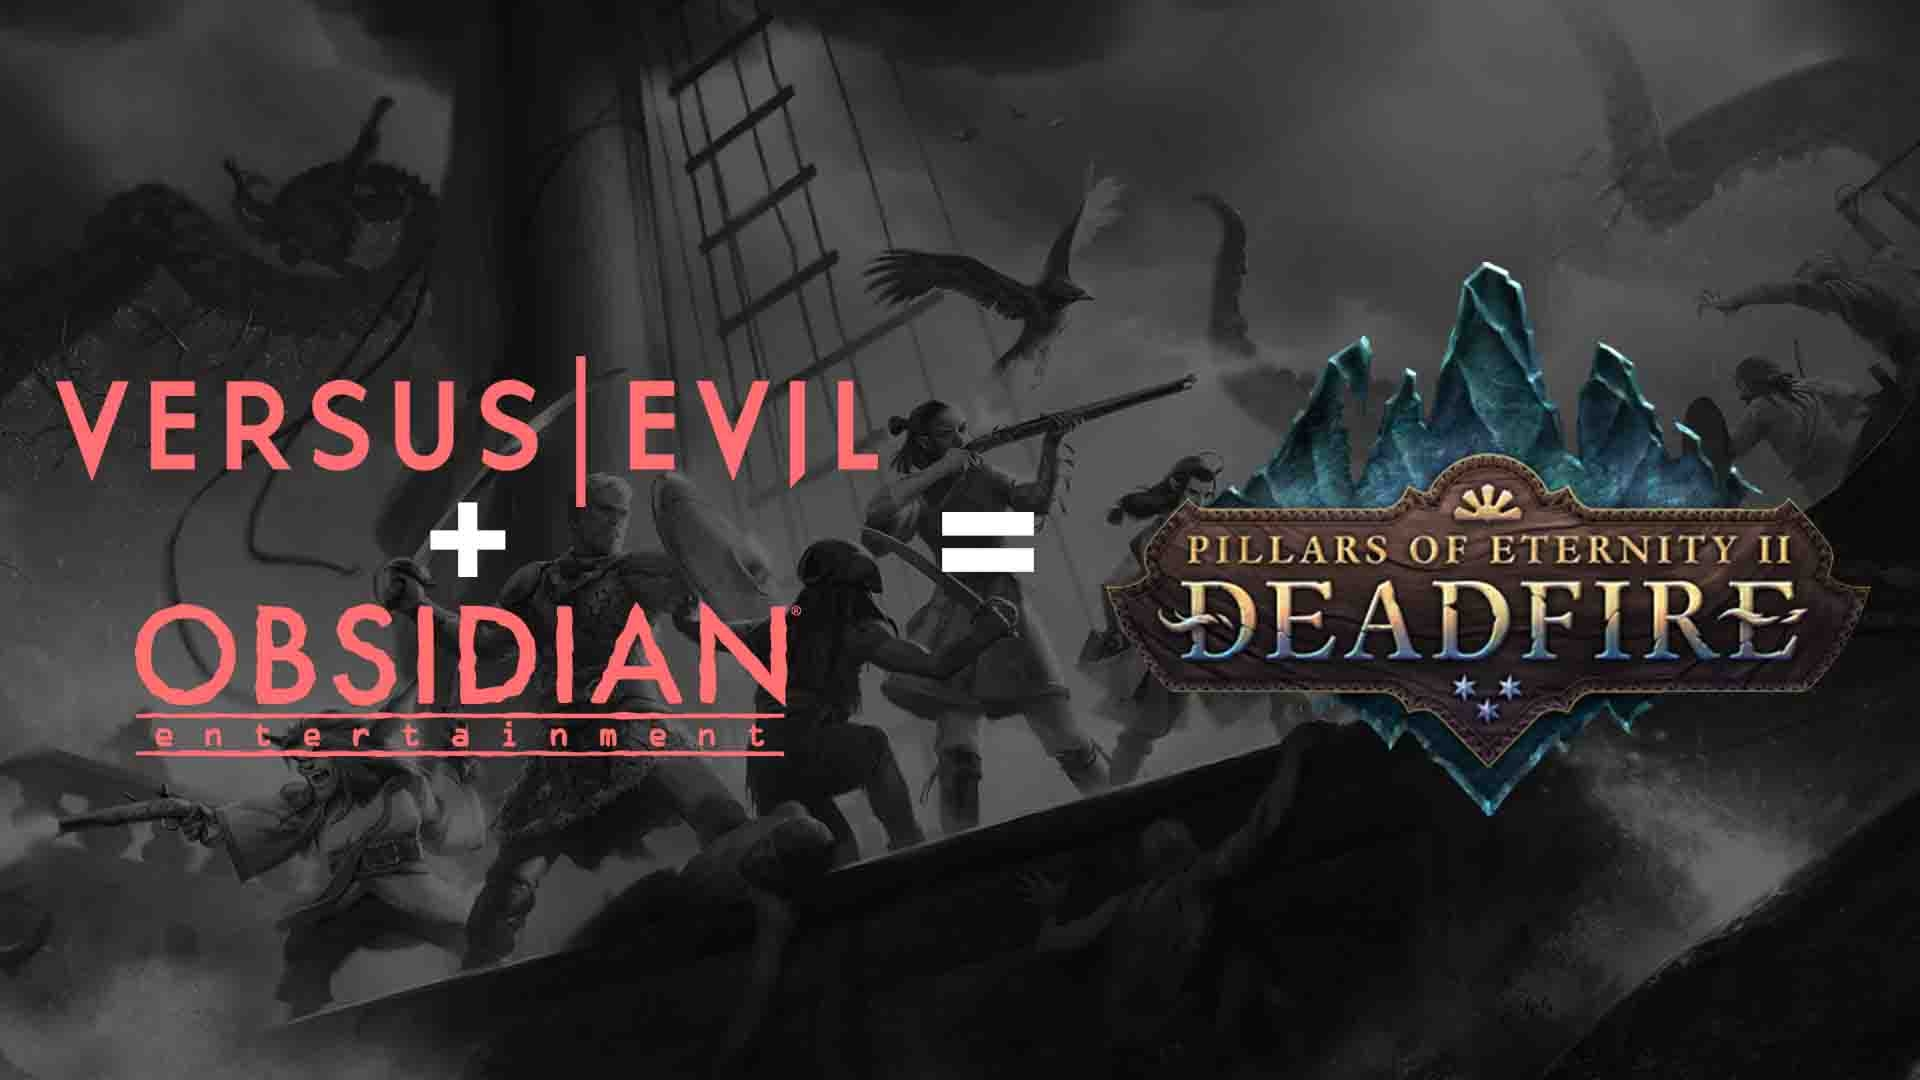 pillars-of-eternity-2-ii-deadfire-obsidian-entertainment-versus-evil-publishing-partnership-pc-windows-mac-linux-steam-crpg